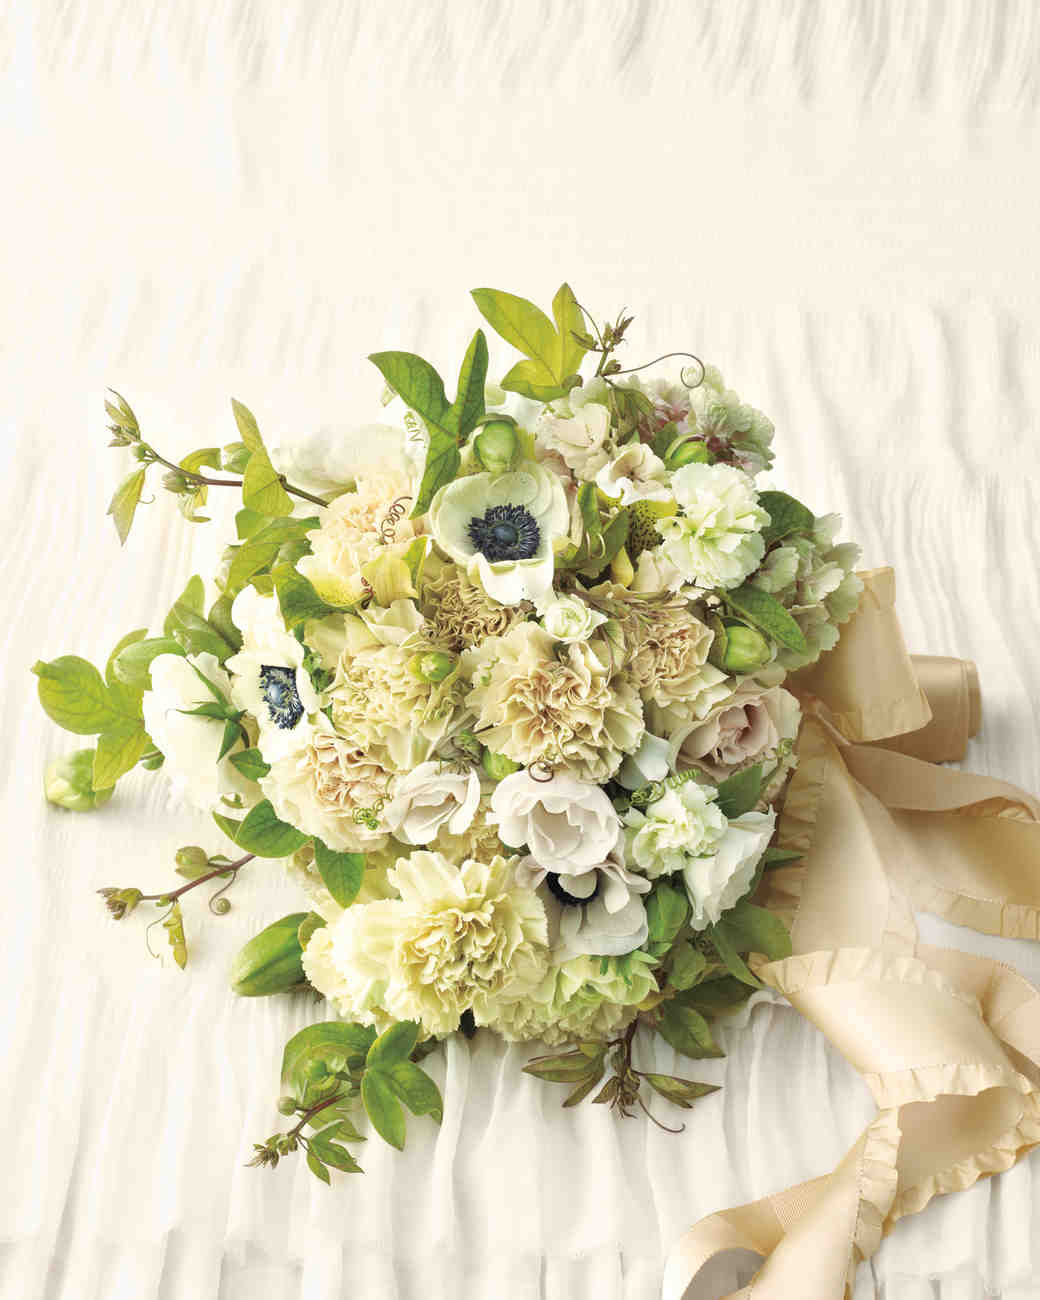 Carnation wedding ideas yes it 39 s more than a filler flower martha stewart weddings - Flowers good luck bridal bouquet ...